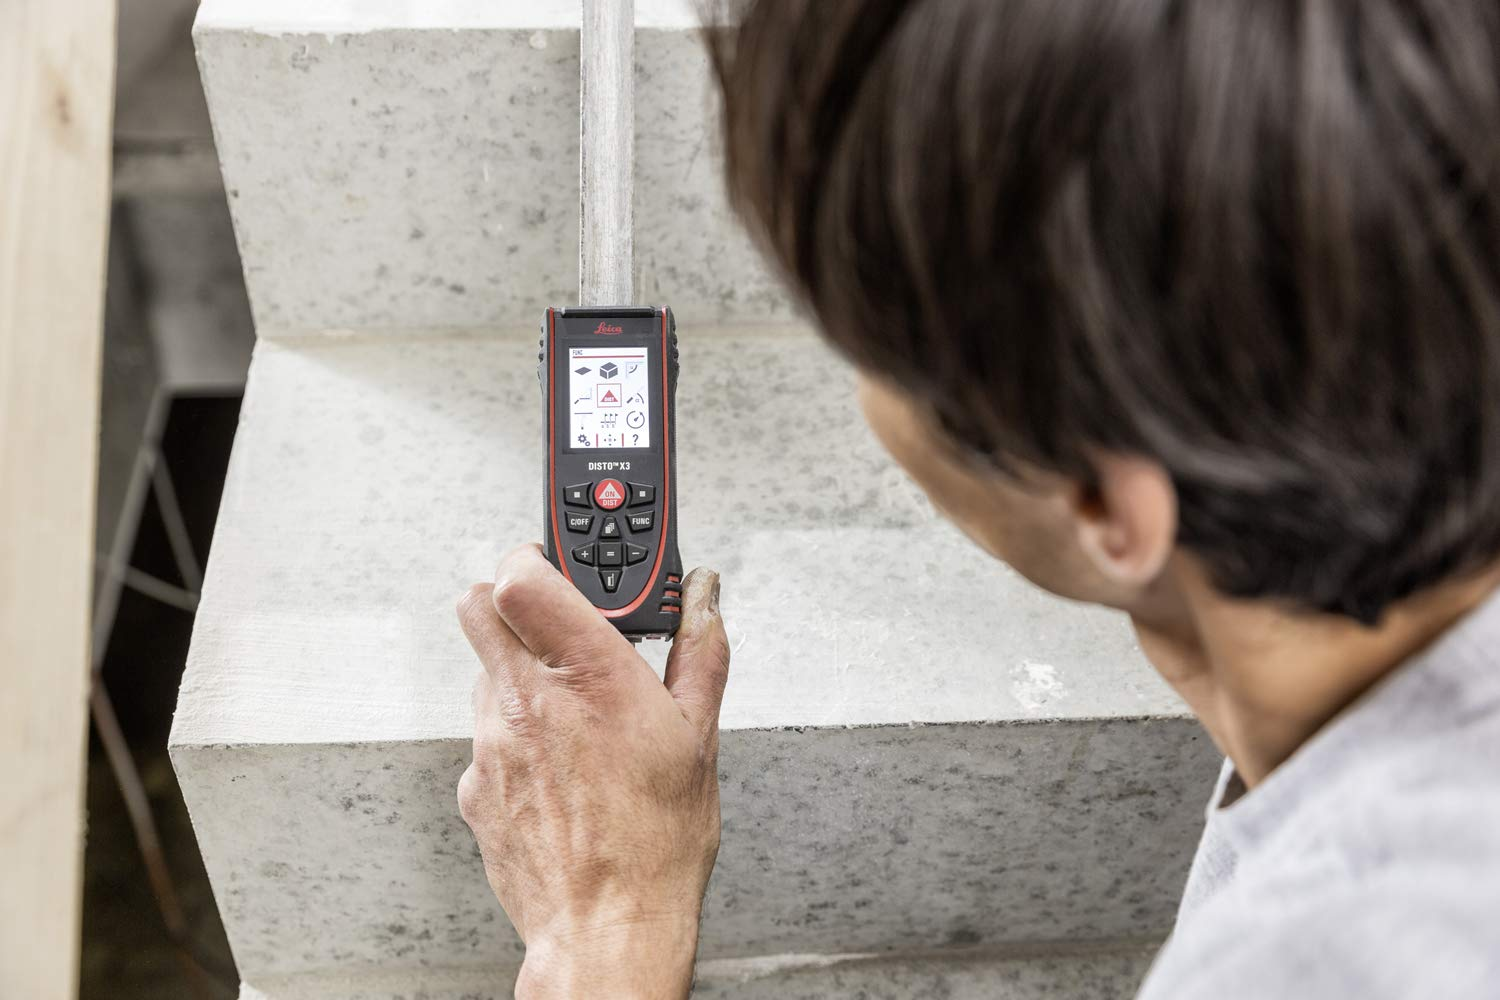 Leica Geosystems Disto X3/ Leica robuste T/él/ém/ètre laser pour le retour Chantier quotidien plage de mesure jusqu/à 150/ m et interface Bluetooth pour applications